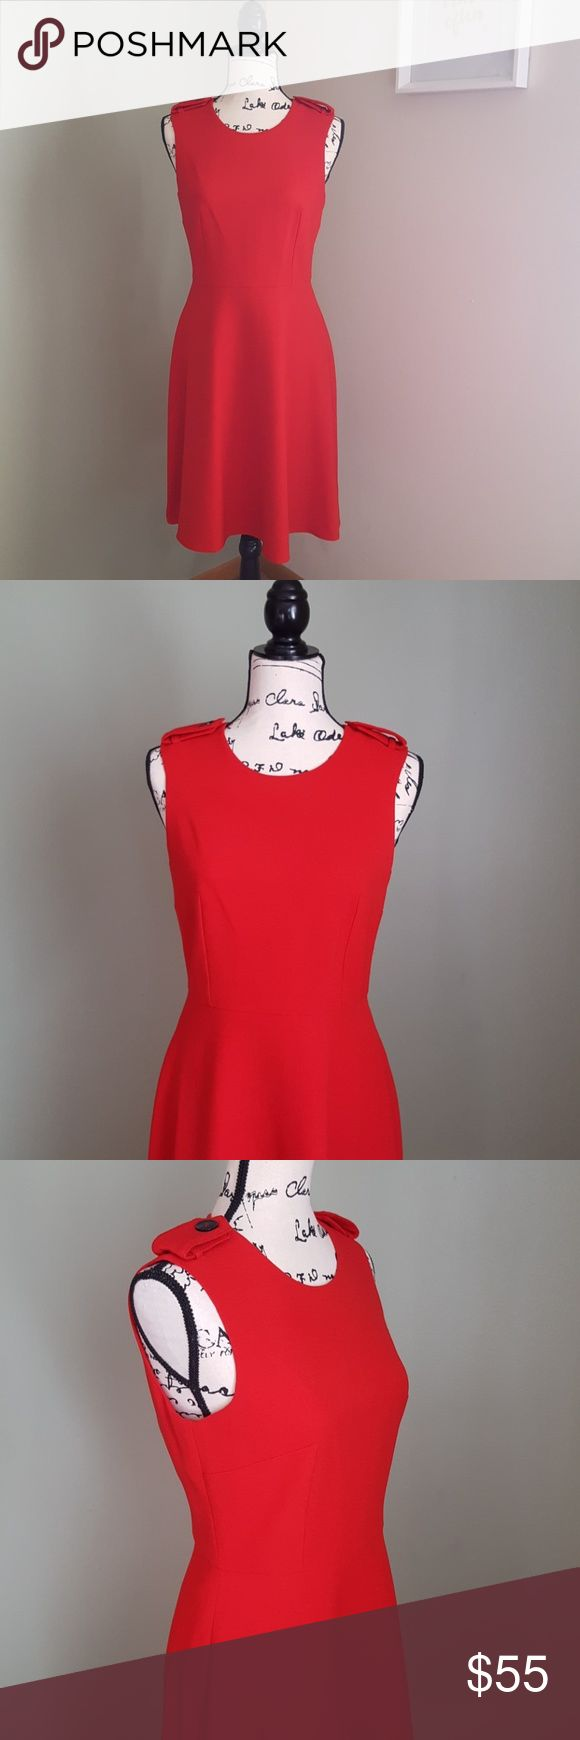 Tommy Hilfiger    NWOT Classic Red Fit Flare Dress New without tag Tommy Hilfiger fit and flare dress in classic red. Simple and chic. Size 4. Sleeveless with defined waistline, decorated shoulders, lined dress and full back zipper. 97% polyester 3% spandex, lining 100% polyester, dry clean only.  Measurements (flat lay) *armpit to armpit 17in *waist 14.5in *dress length 38in Tommy Hilfiger Dresses Midi